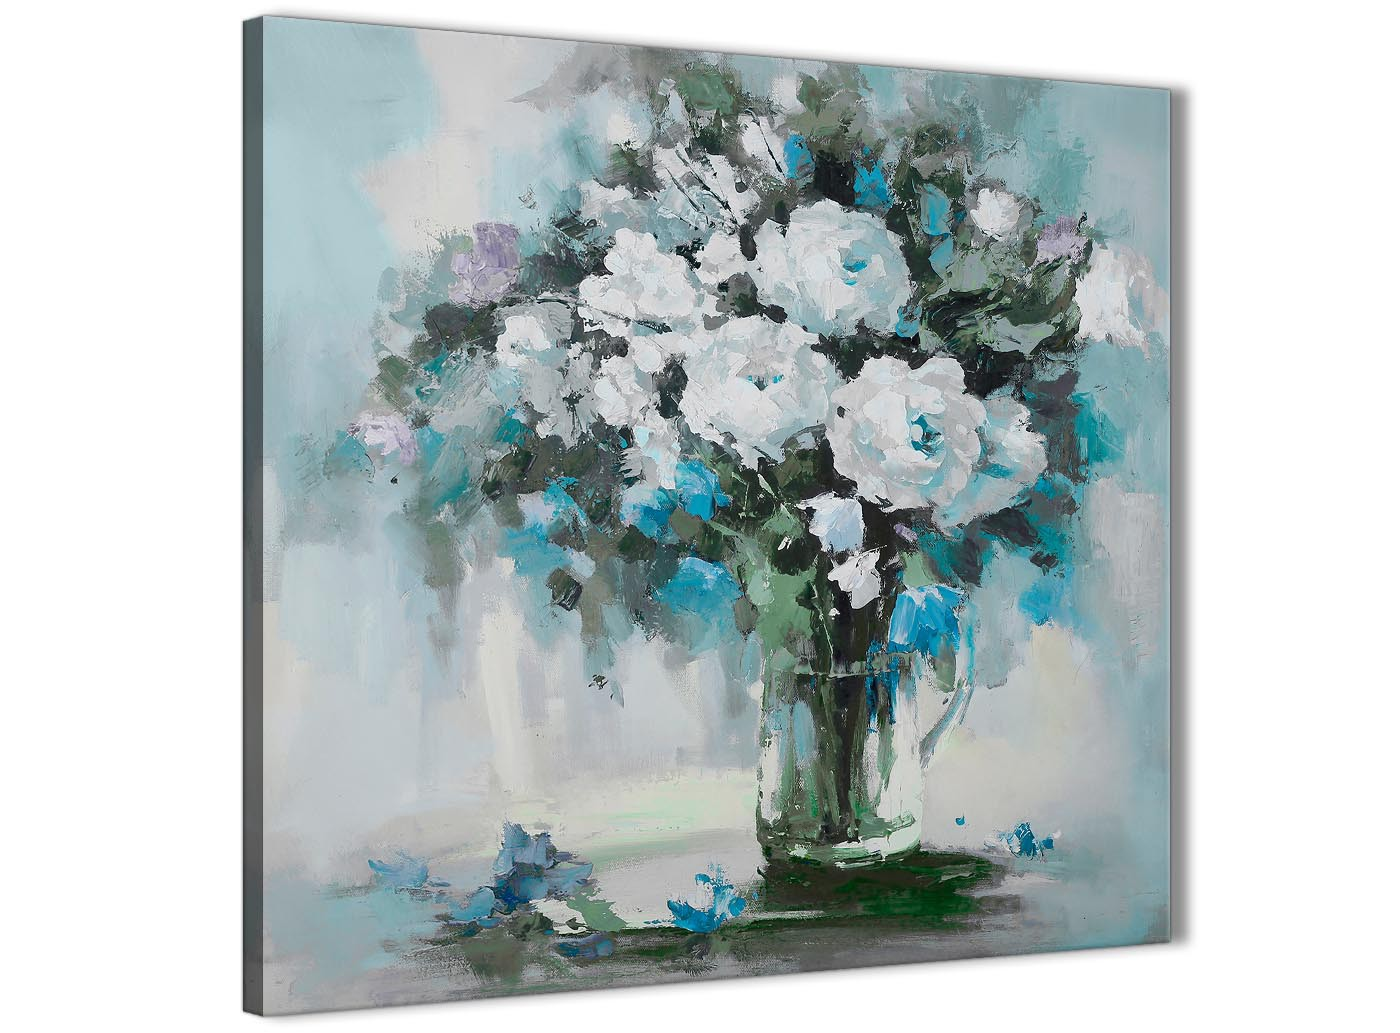 teal white flowers painting bathroom canvas wall art accessories abstract 1s440s 49cm square. Black Bedroom Furniture Sets. Home Design Ideas